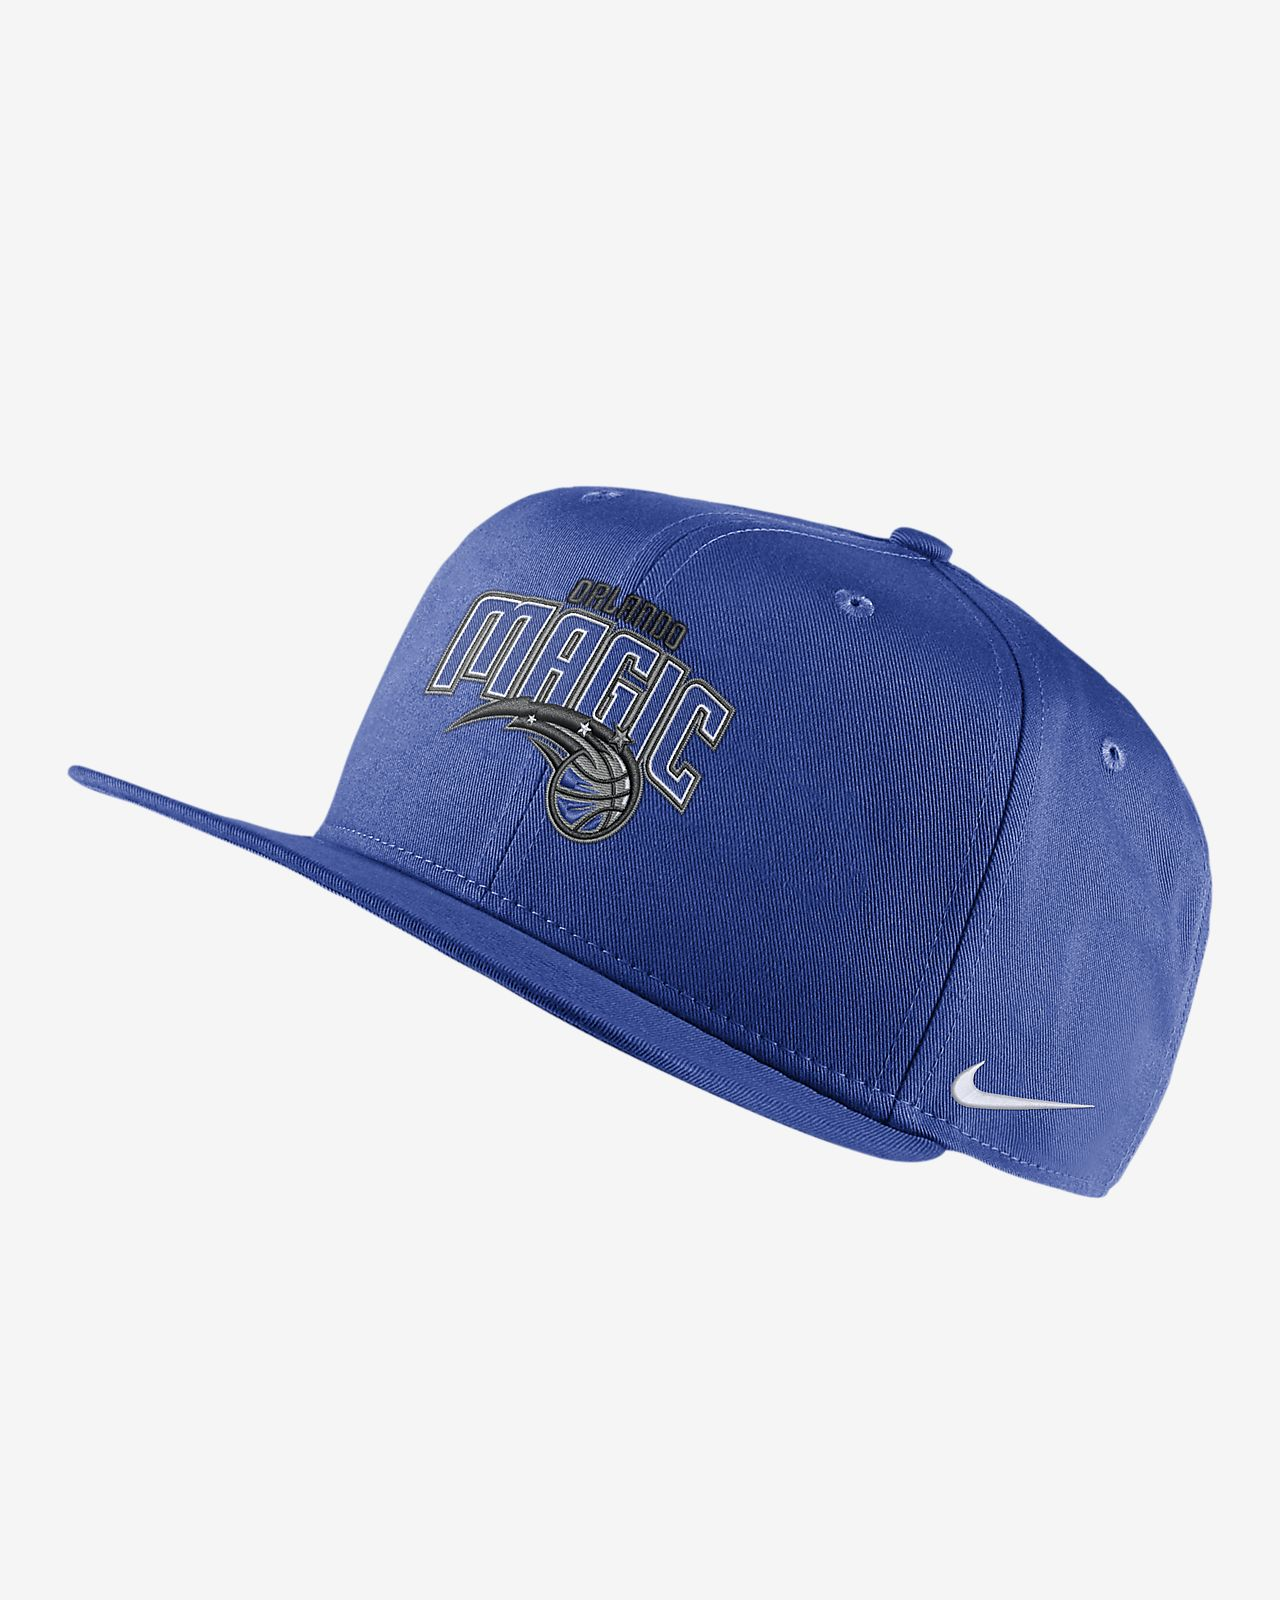 Orlando Magic Nike Pro NBA Cap